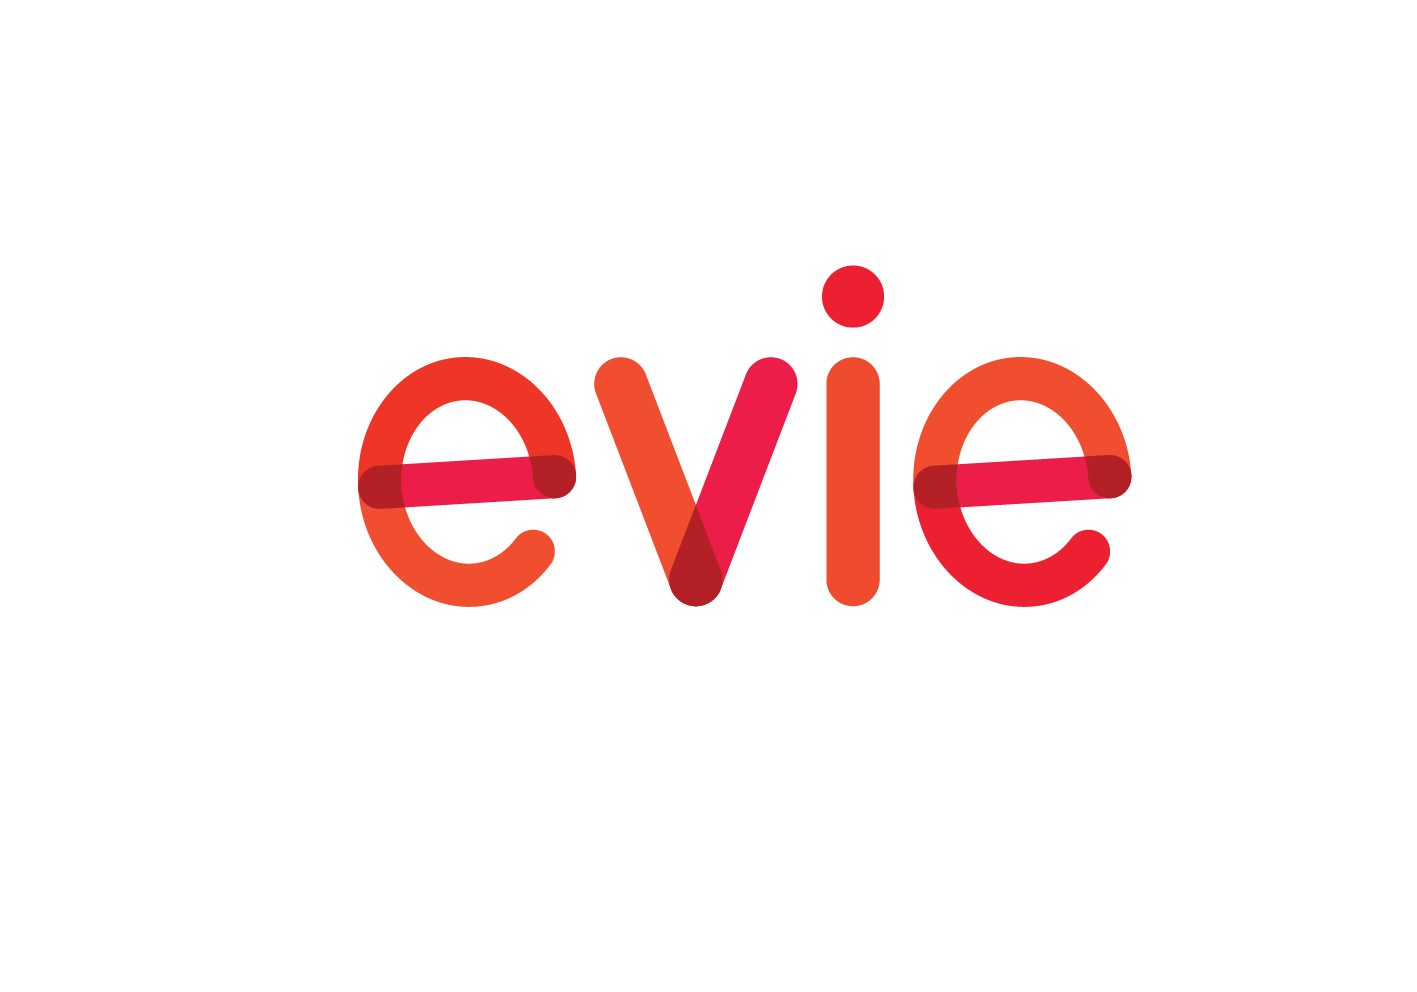 Cover image: Evie